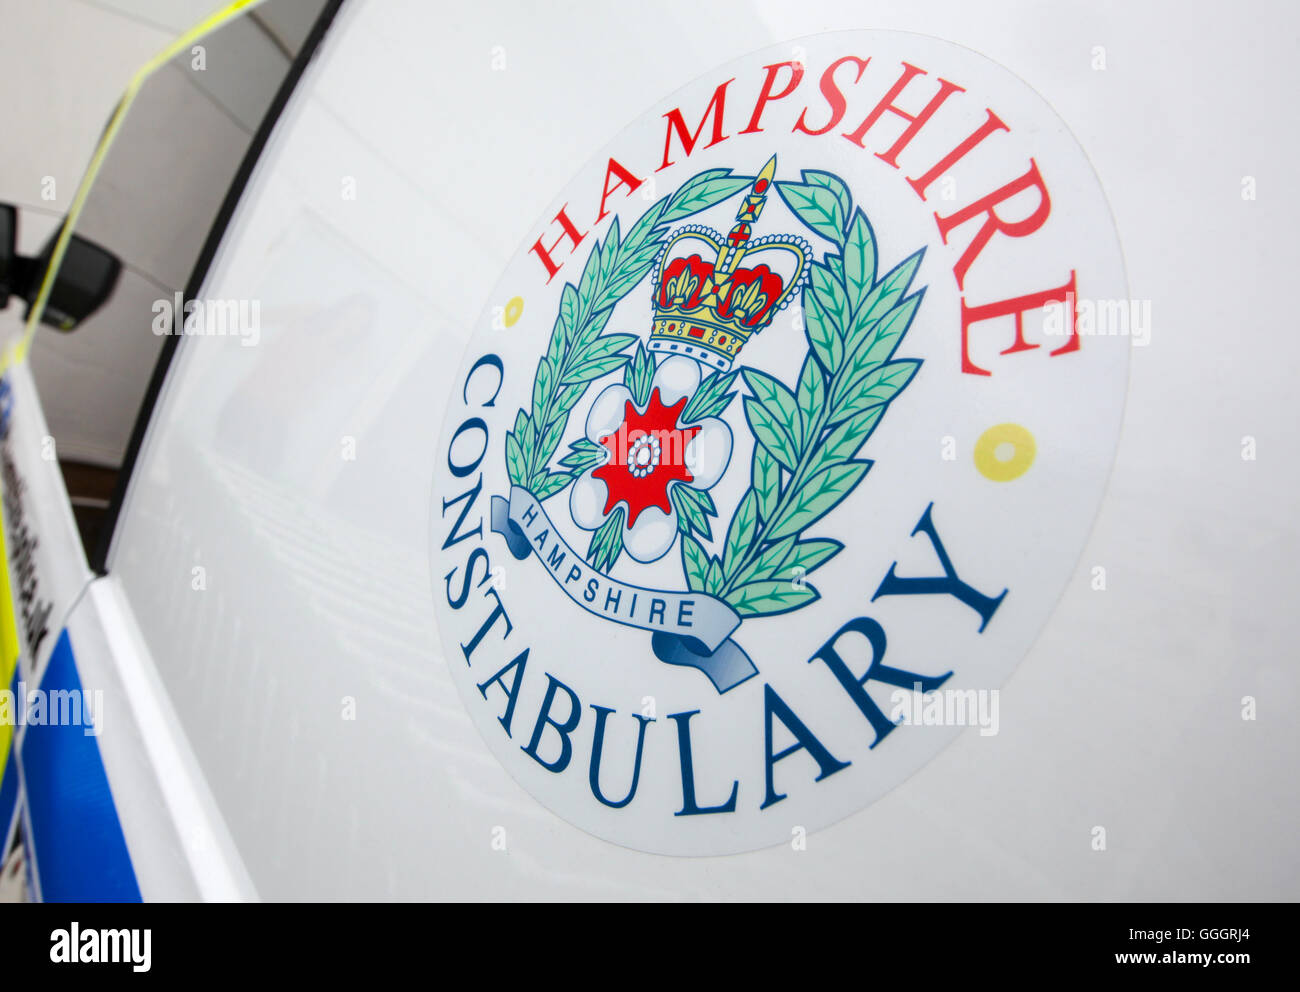 Hampshire Constabulary police logo on the side of a police van - Stock Image